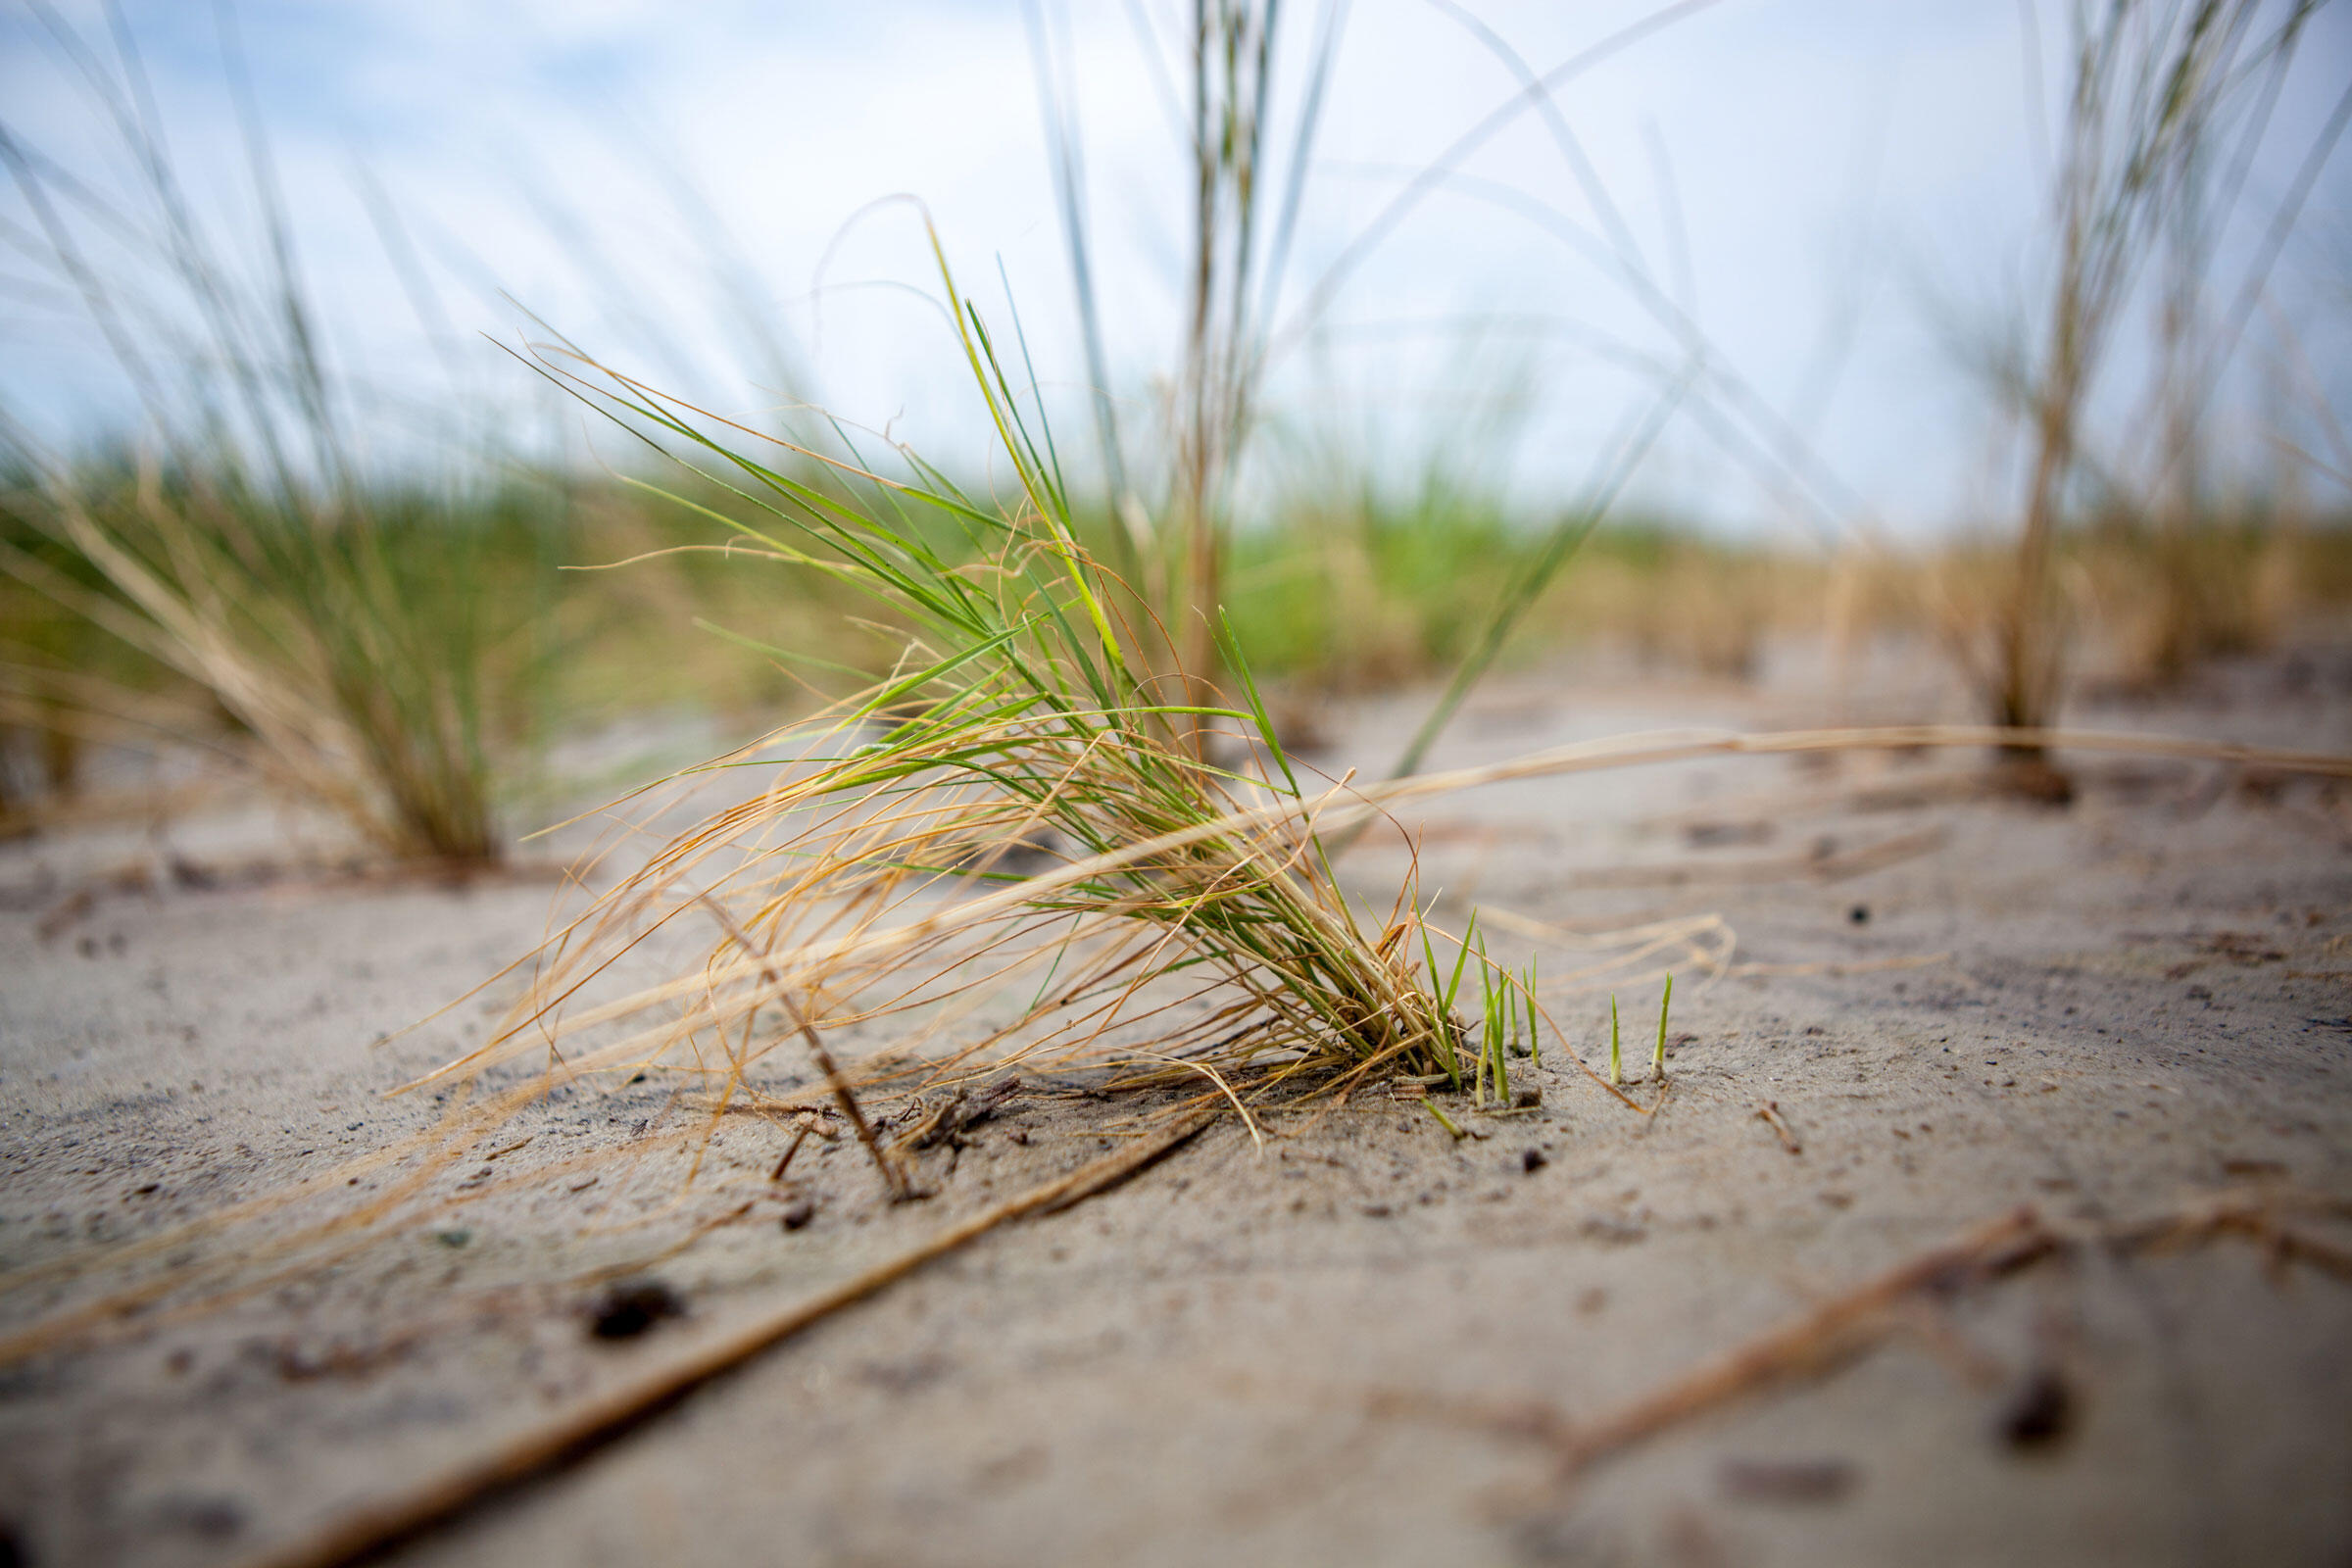 Under the soil, the roots of these brownish grasses are growing strong. Camilla Cerea/Audubon